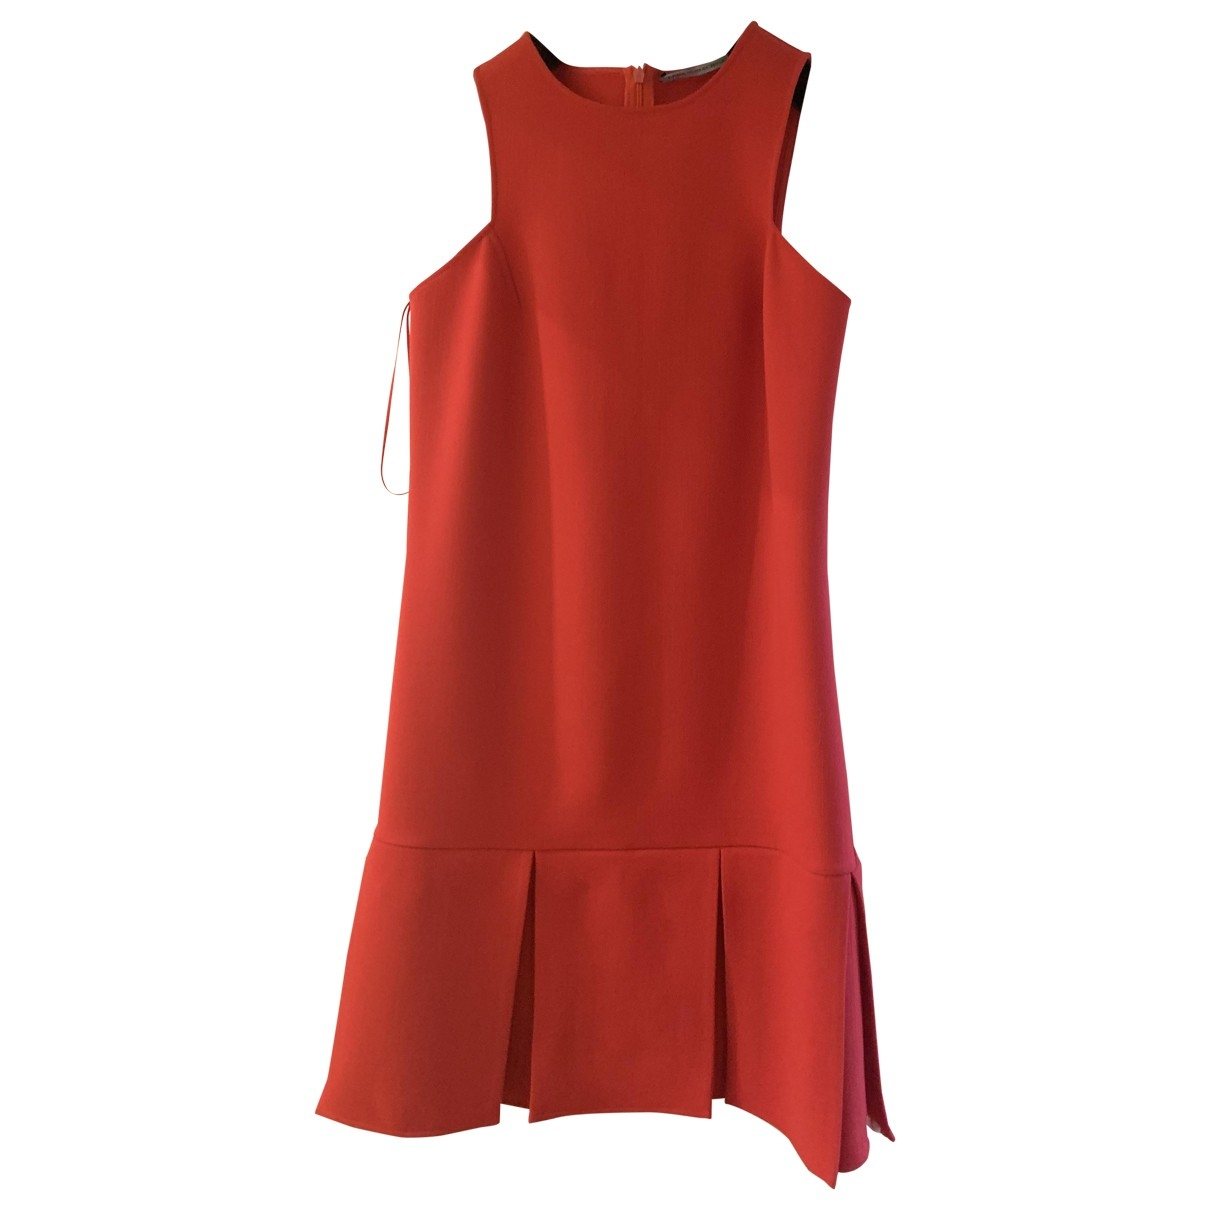 Ermanno Scervino \N Red Wool dress for Women 38 IT